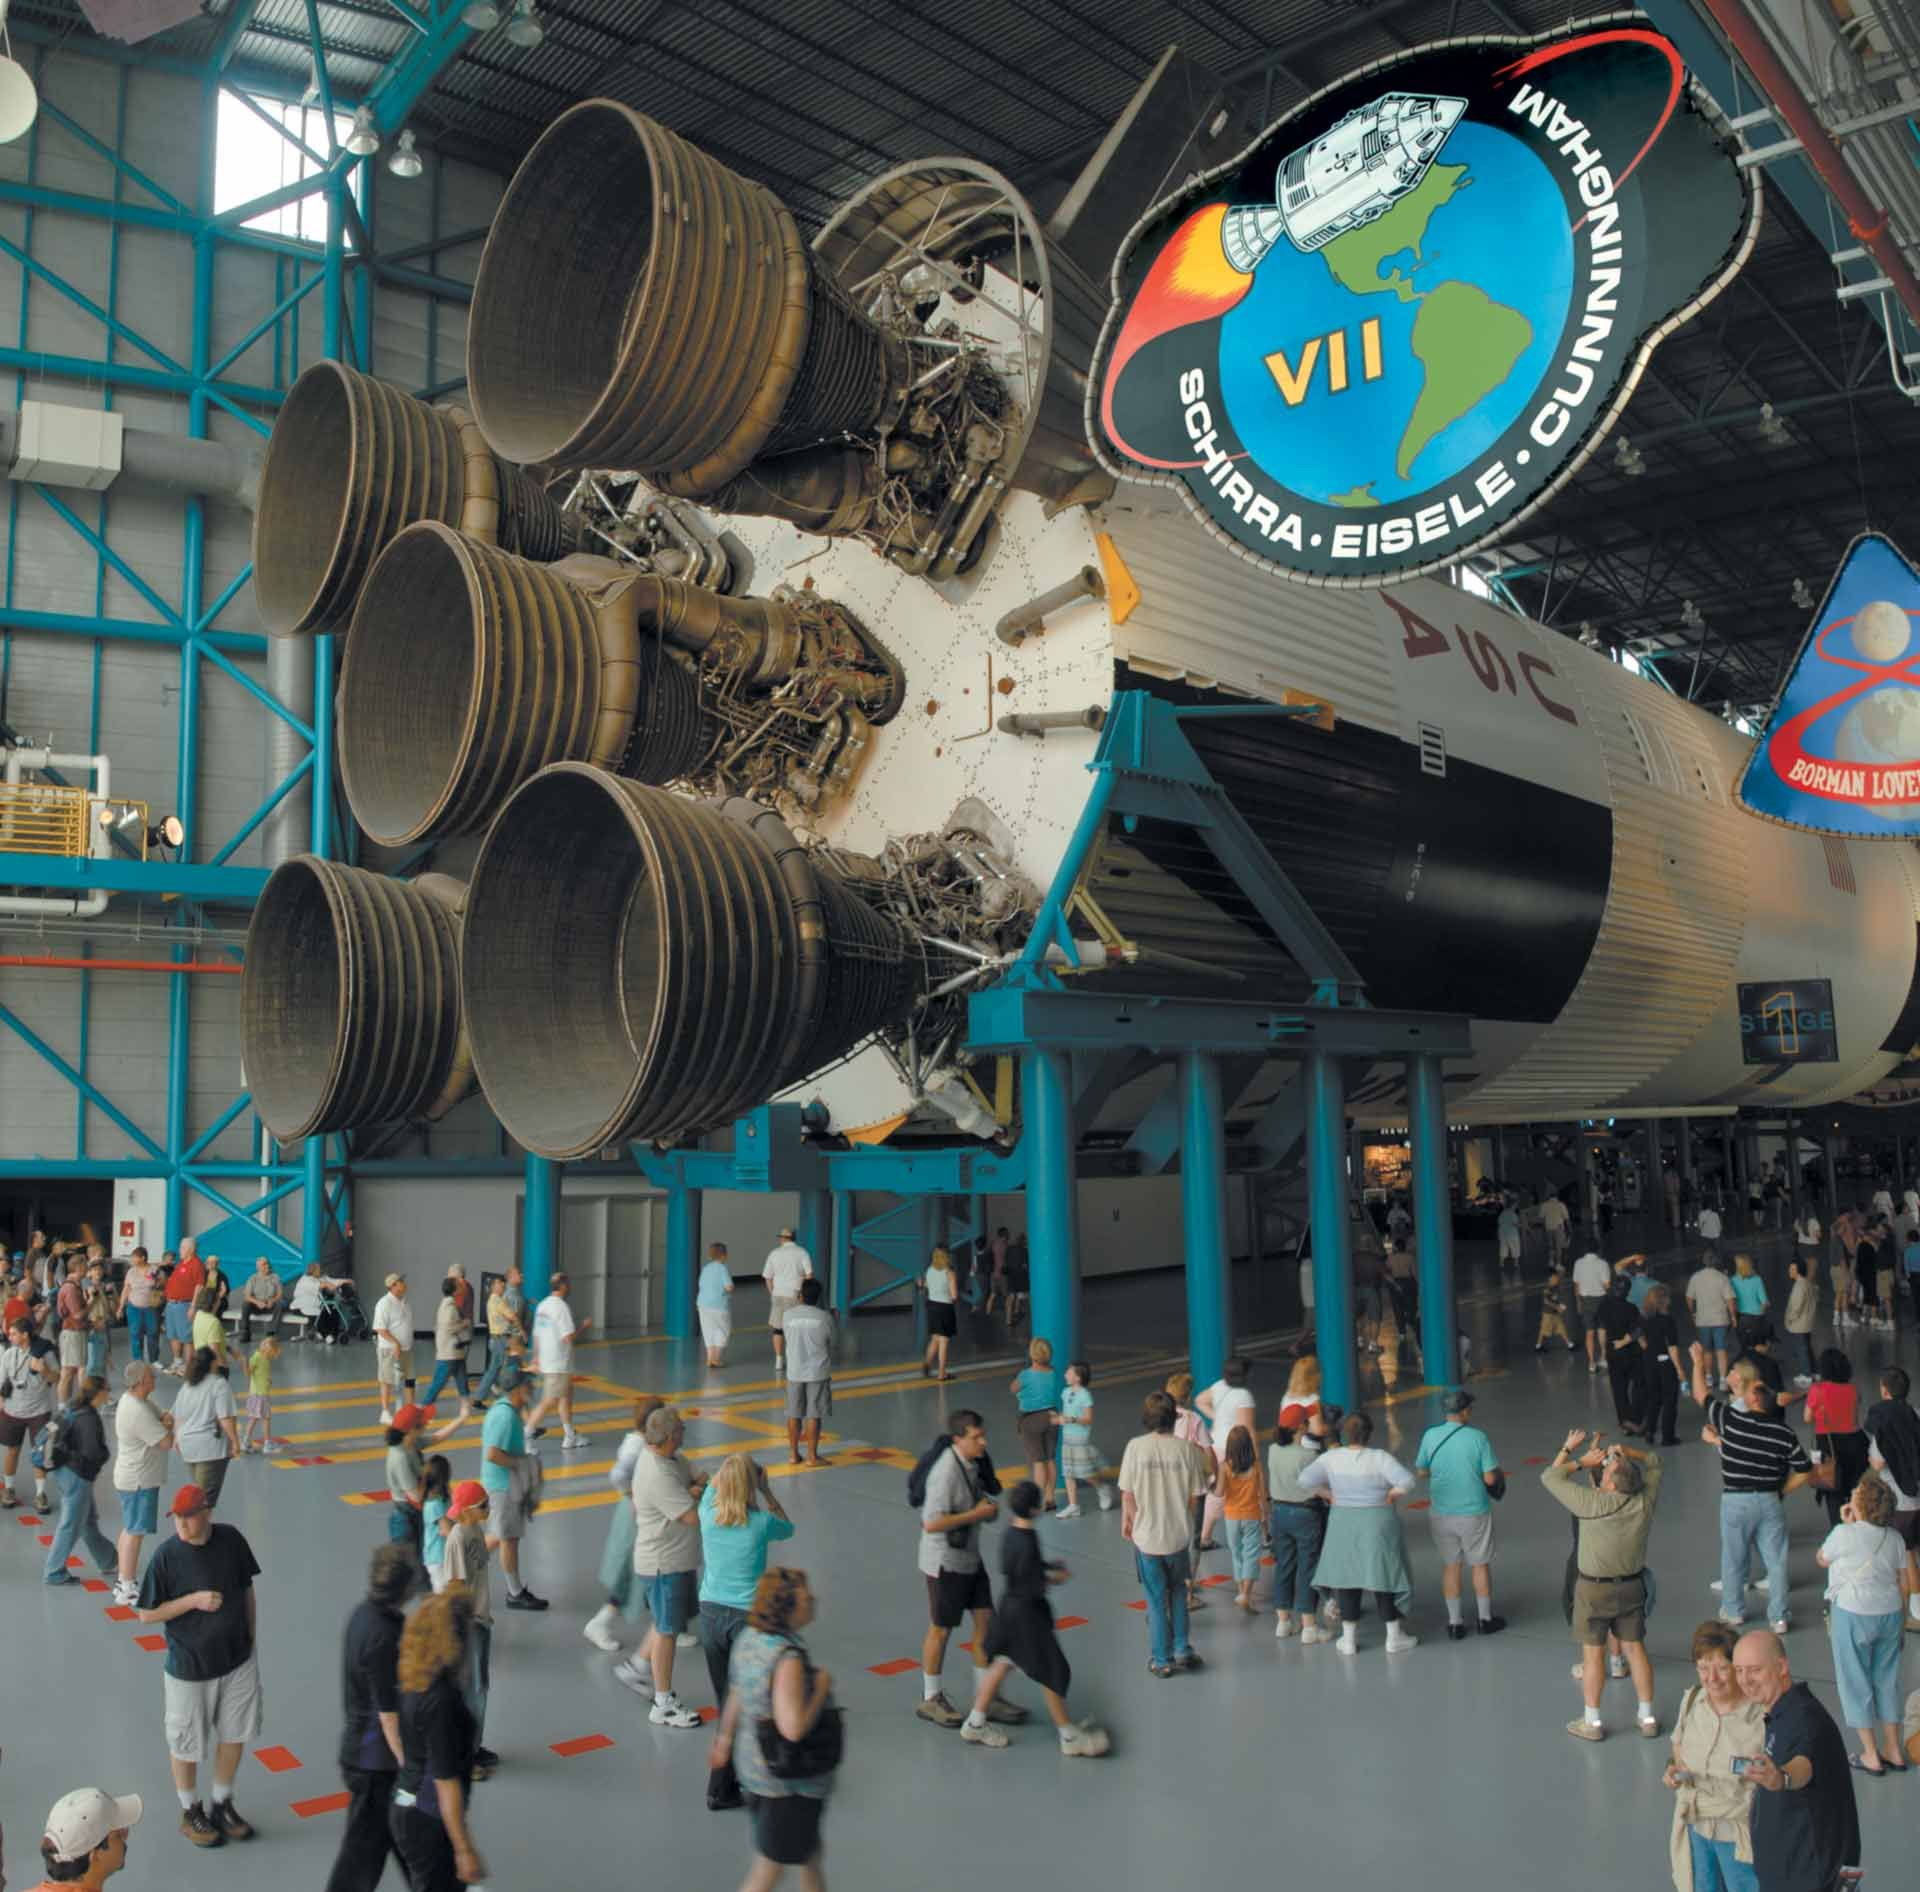 apollo 5 kennedy space center - photo #35